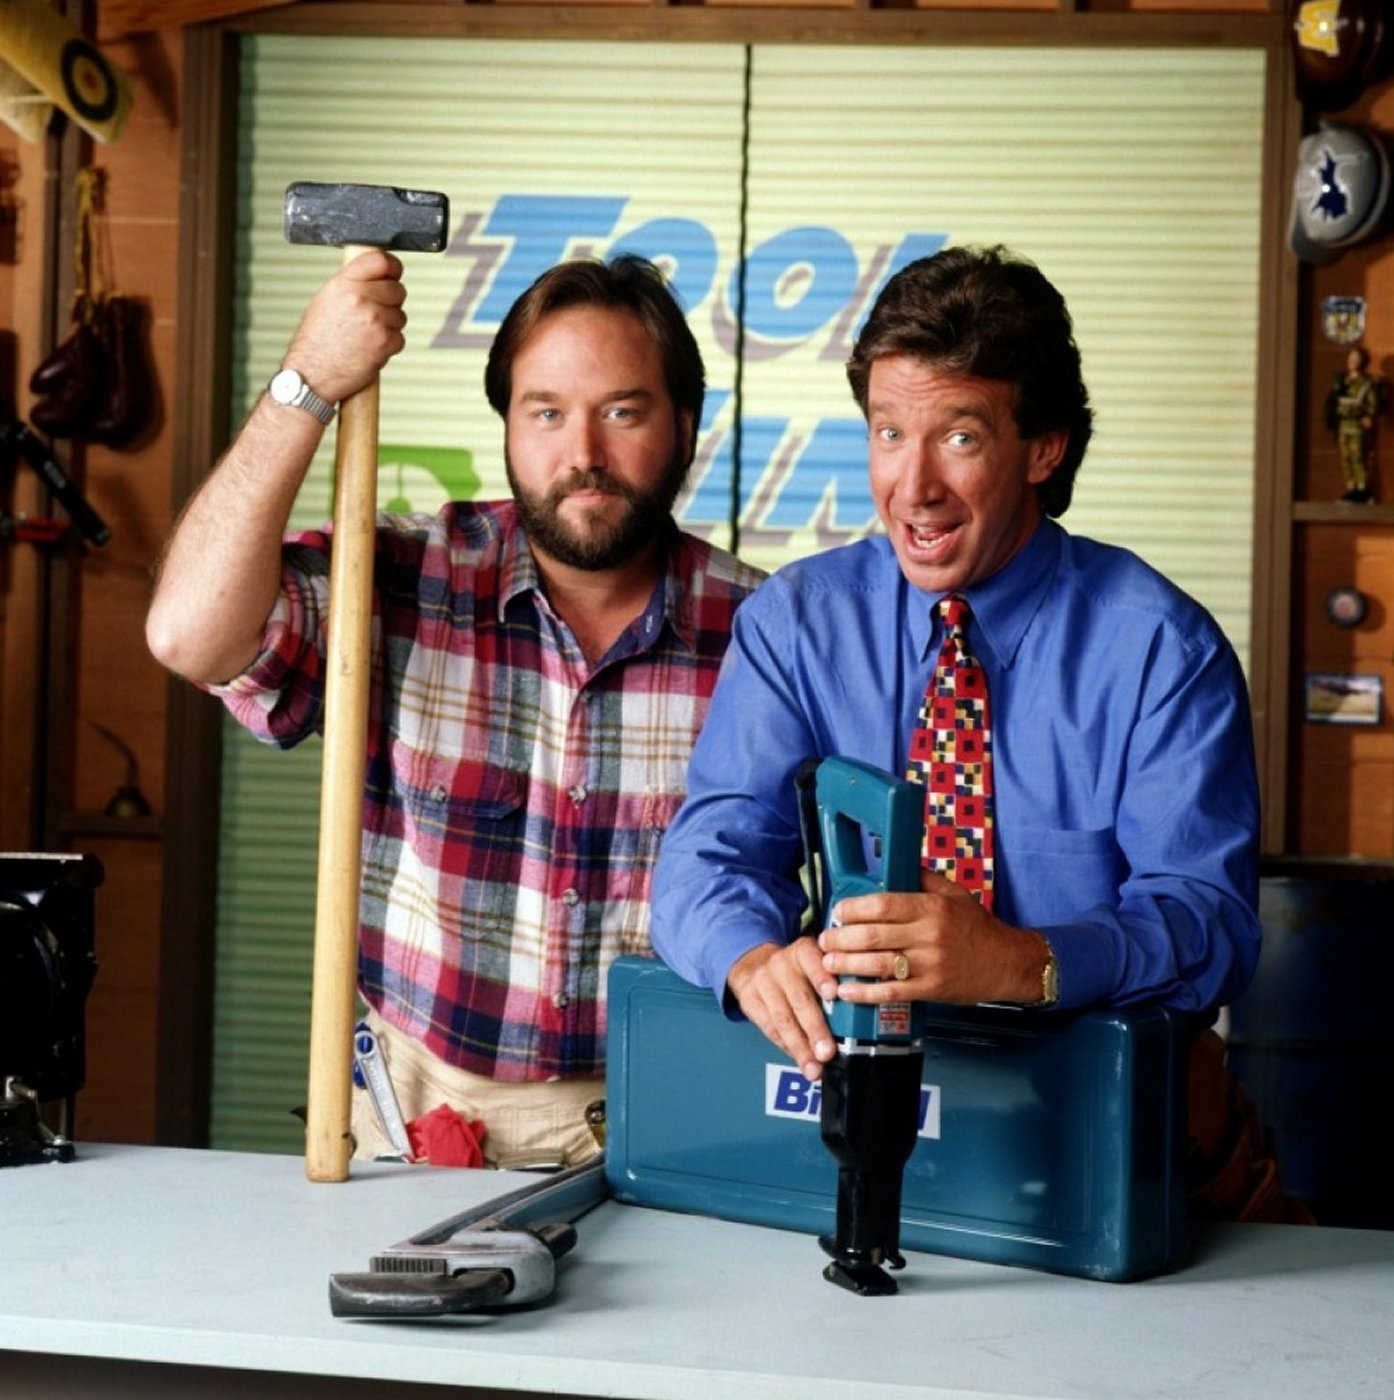 Tim-Al-home-improvement-tv-show-30858727-1394-1400.jpg